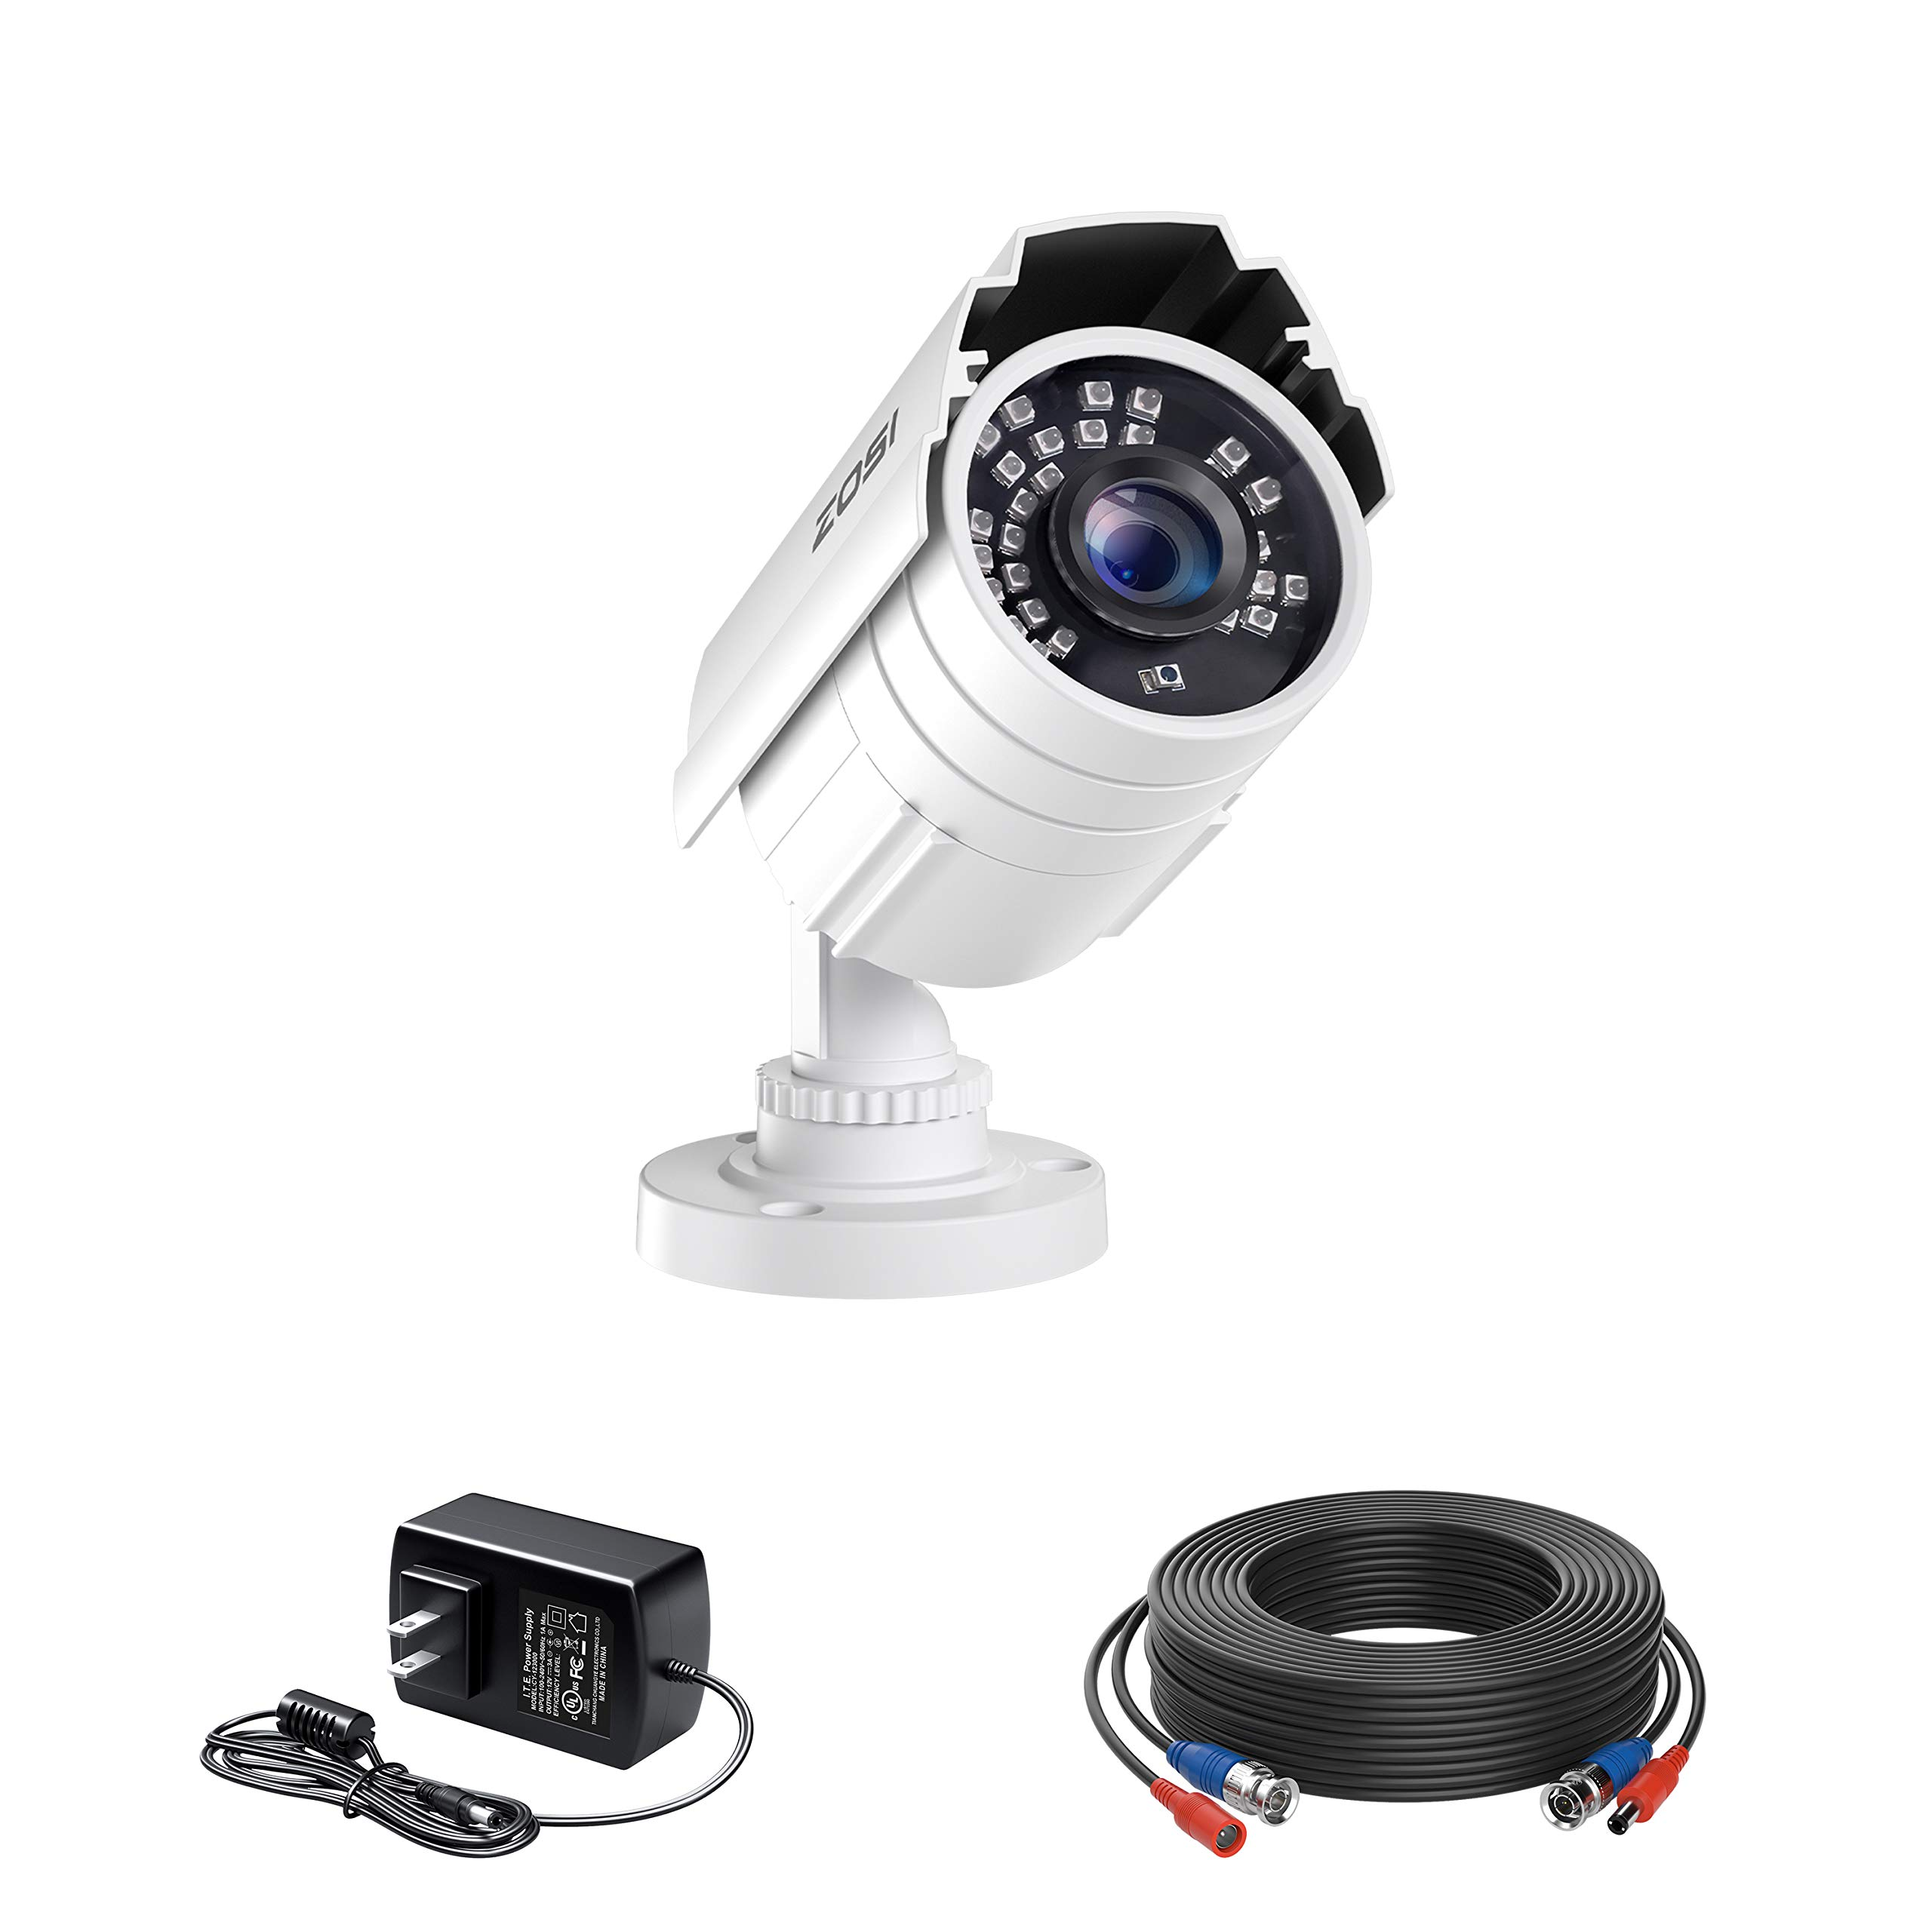 ZOSI 1080p HD 2MP Surveillance Camera Outdoor Indoor (Hybrid 4-in-1 HD-CVI/TVI/AHD/960H Analog CVBS),80ft IR Night Vision,90° View Angle Weatherproof Security Bullet Camera with Cable and Power Supply